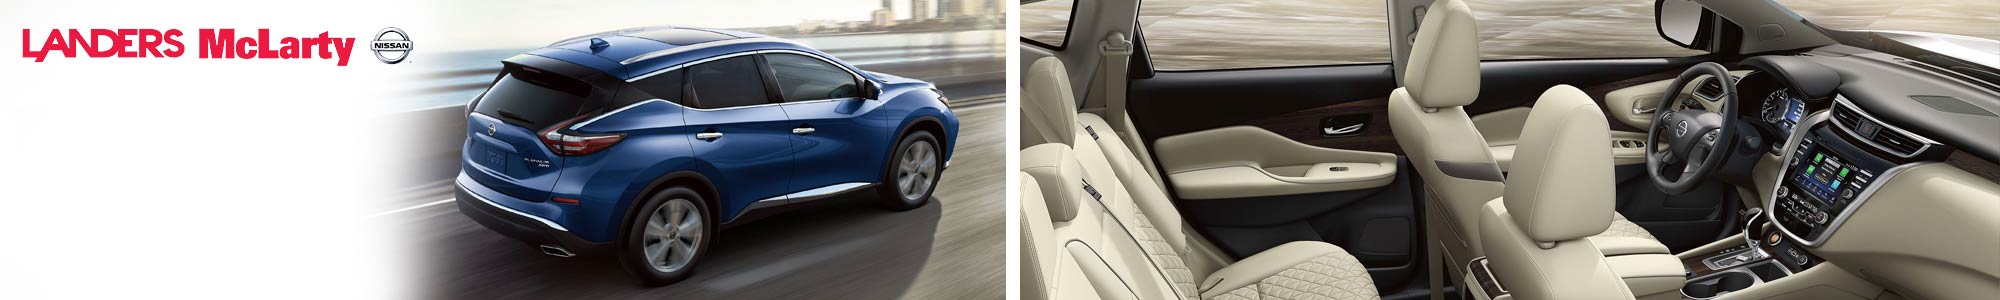 2020 Nissan Murano Interior and Exterior